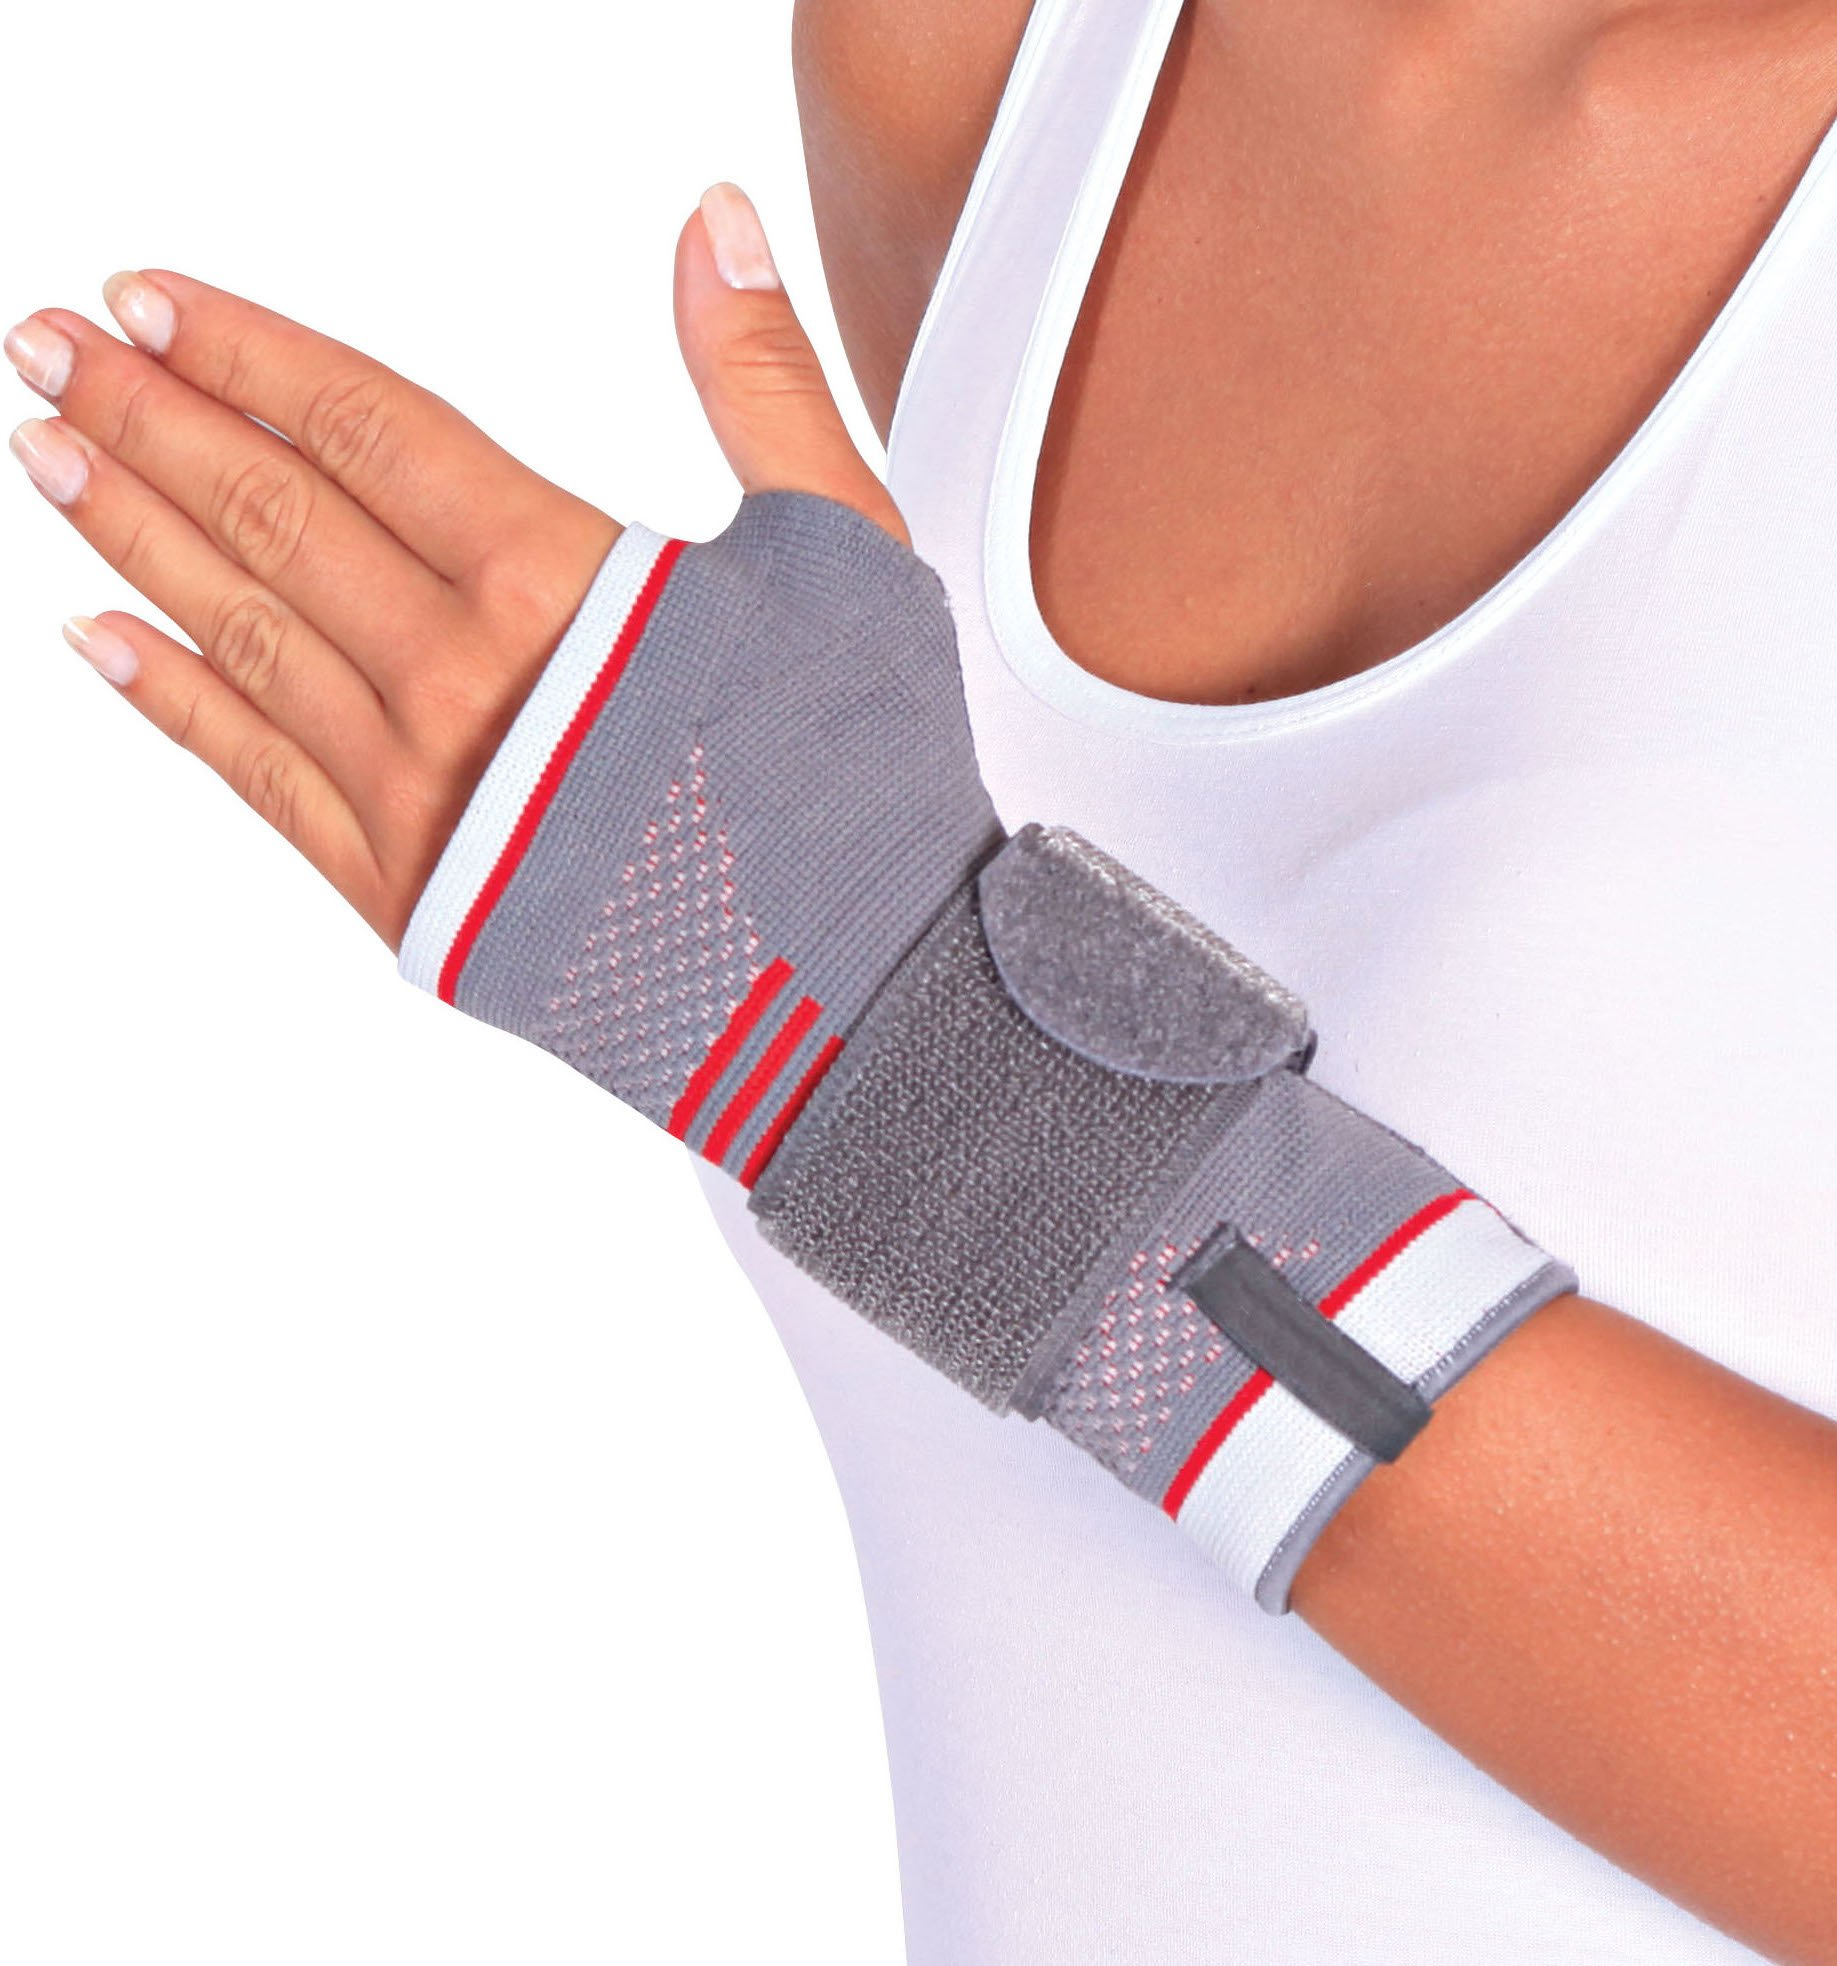 ORTONYX Wrist Support Brace with Splint for Carpal Tunnel Arthritis - S-M/Left Gray/Red